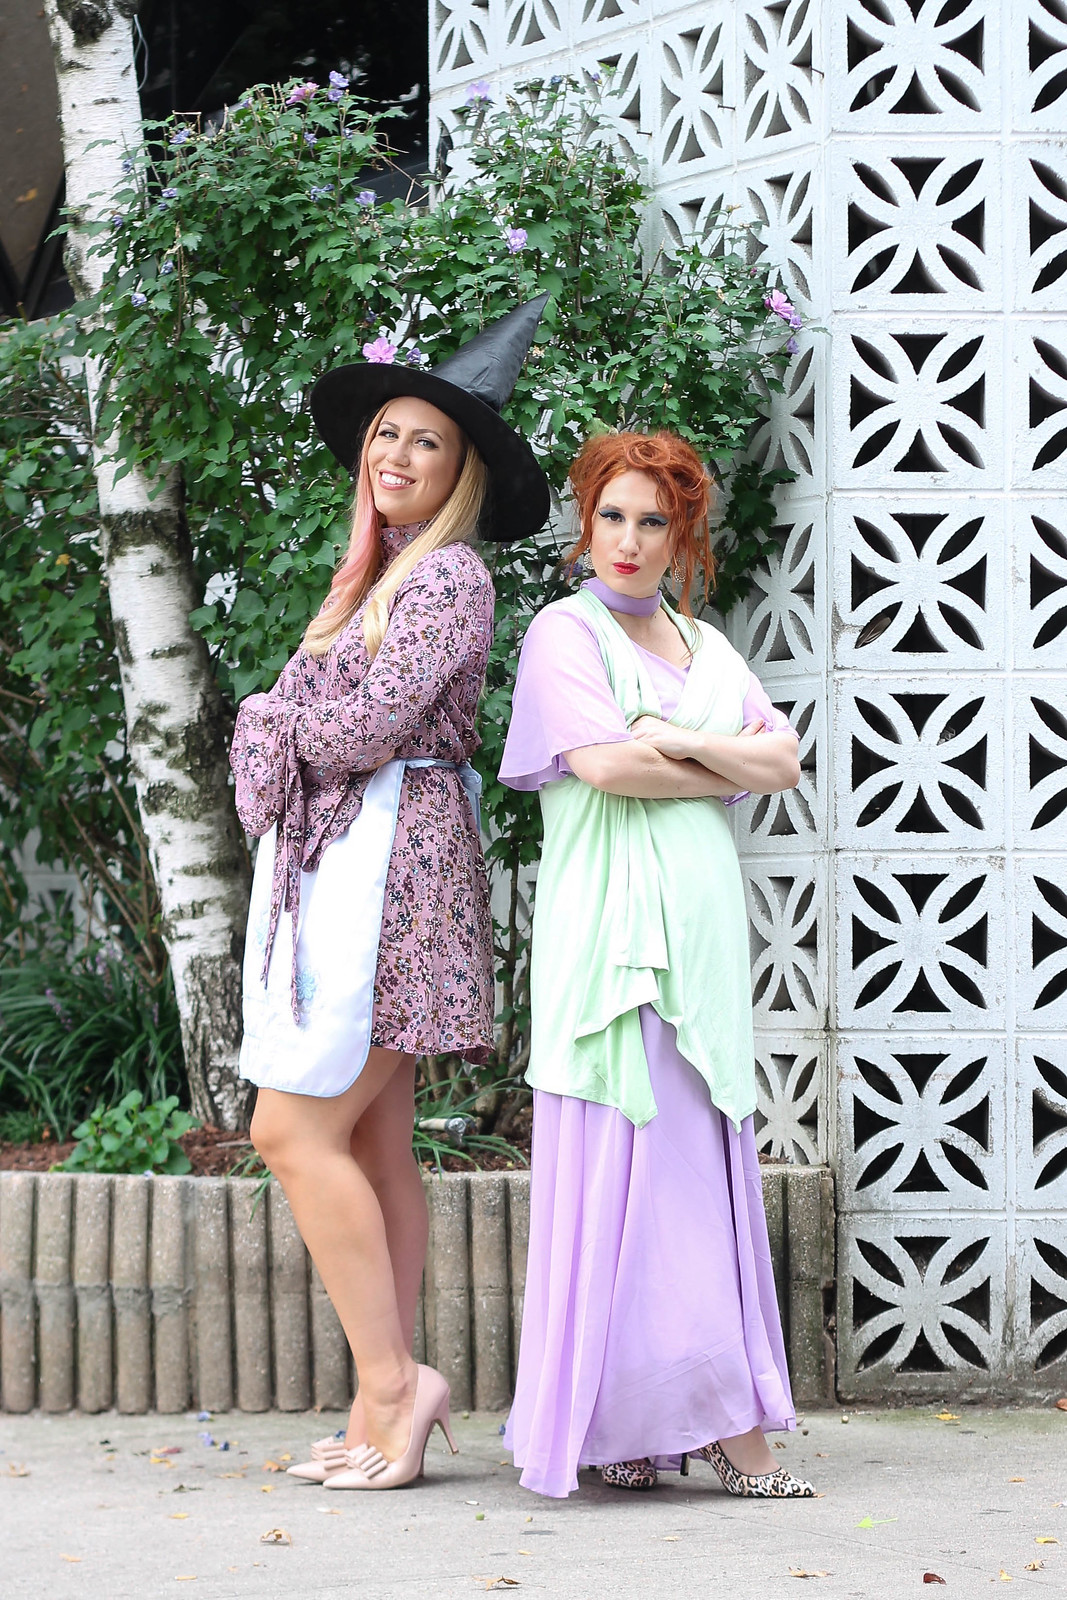 Throwback 60s Halloween Costume Ideas Bewitched TV Series Mother Daughter Modest Costumes